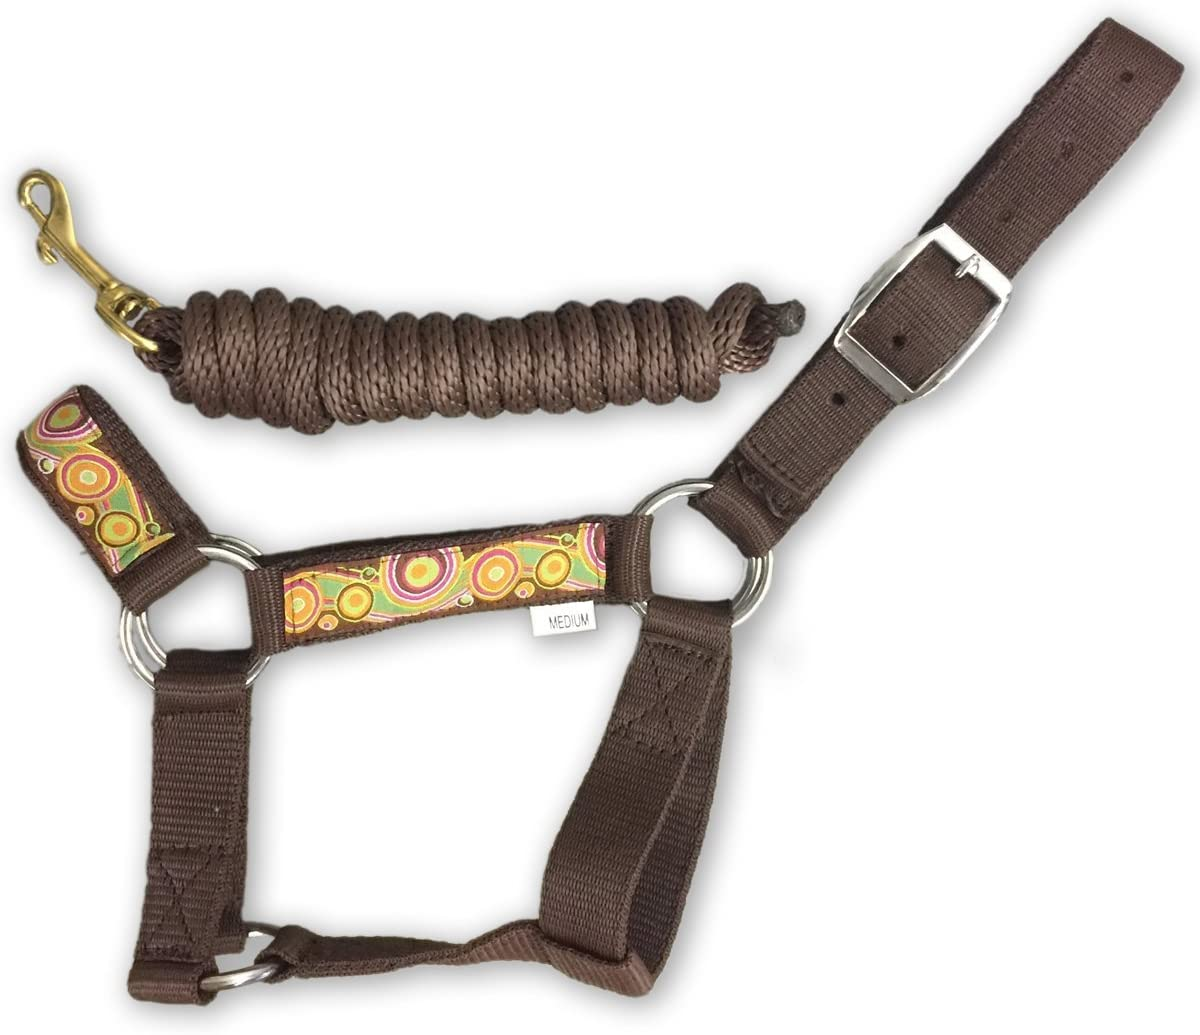 HalterUp Cute and Stylish Miniature Horse Halters and Lead Ropes (2 Item Bundle) Available in 10 Colors…A Great Fitting Halter That's Strong and Durable Yet Comfortable.